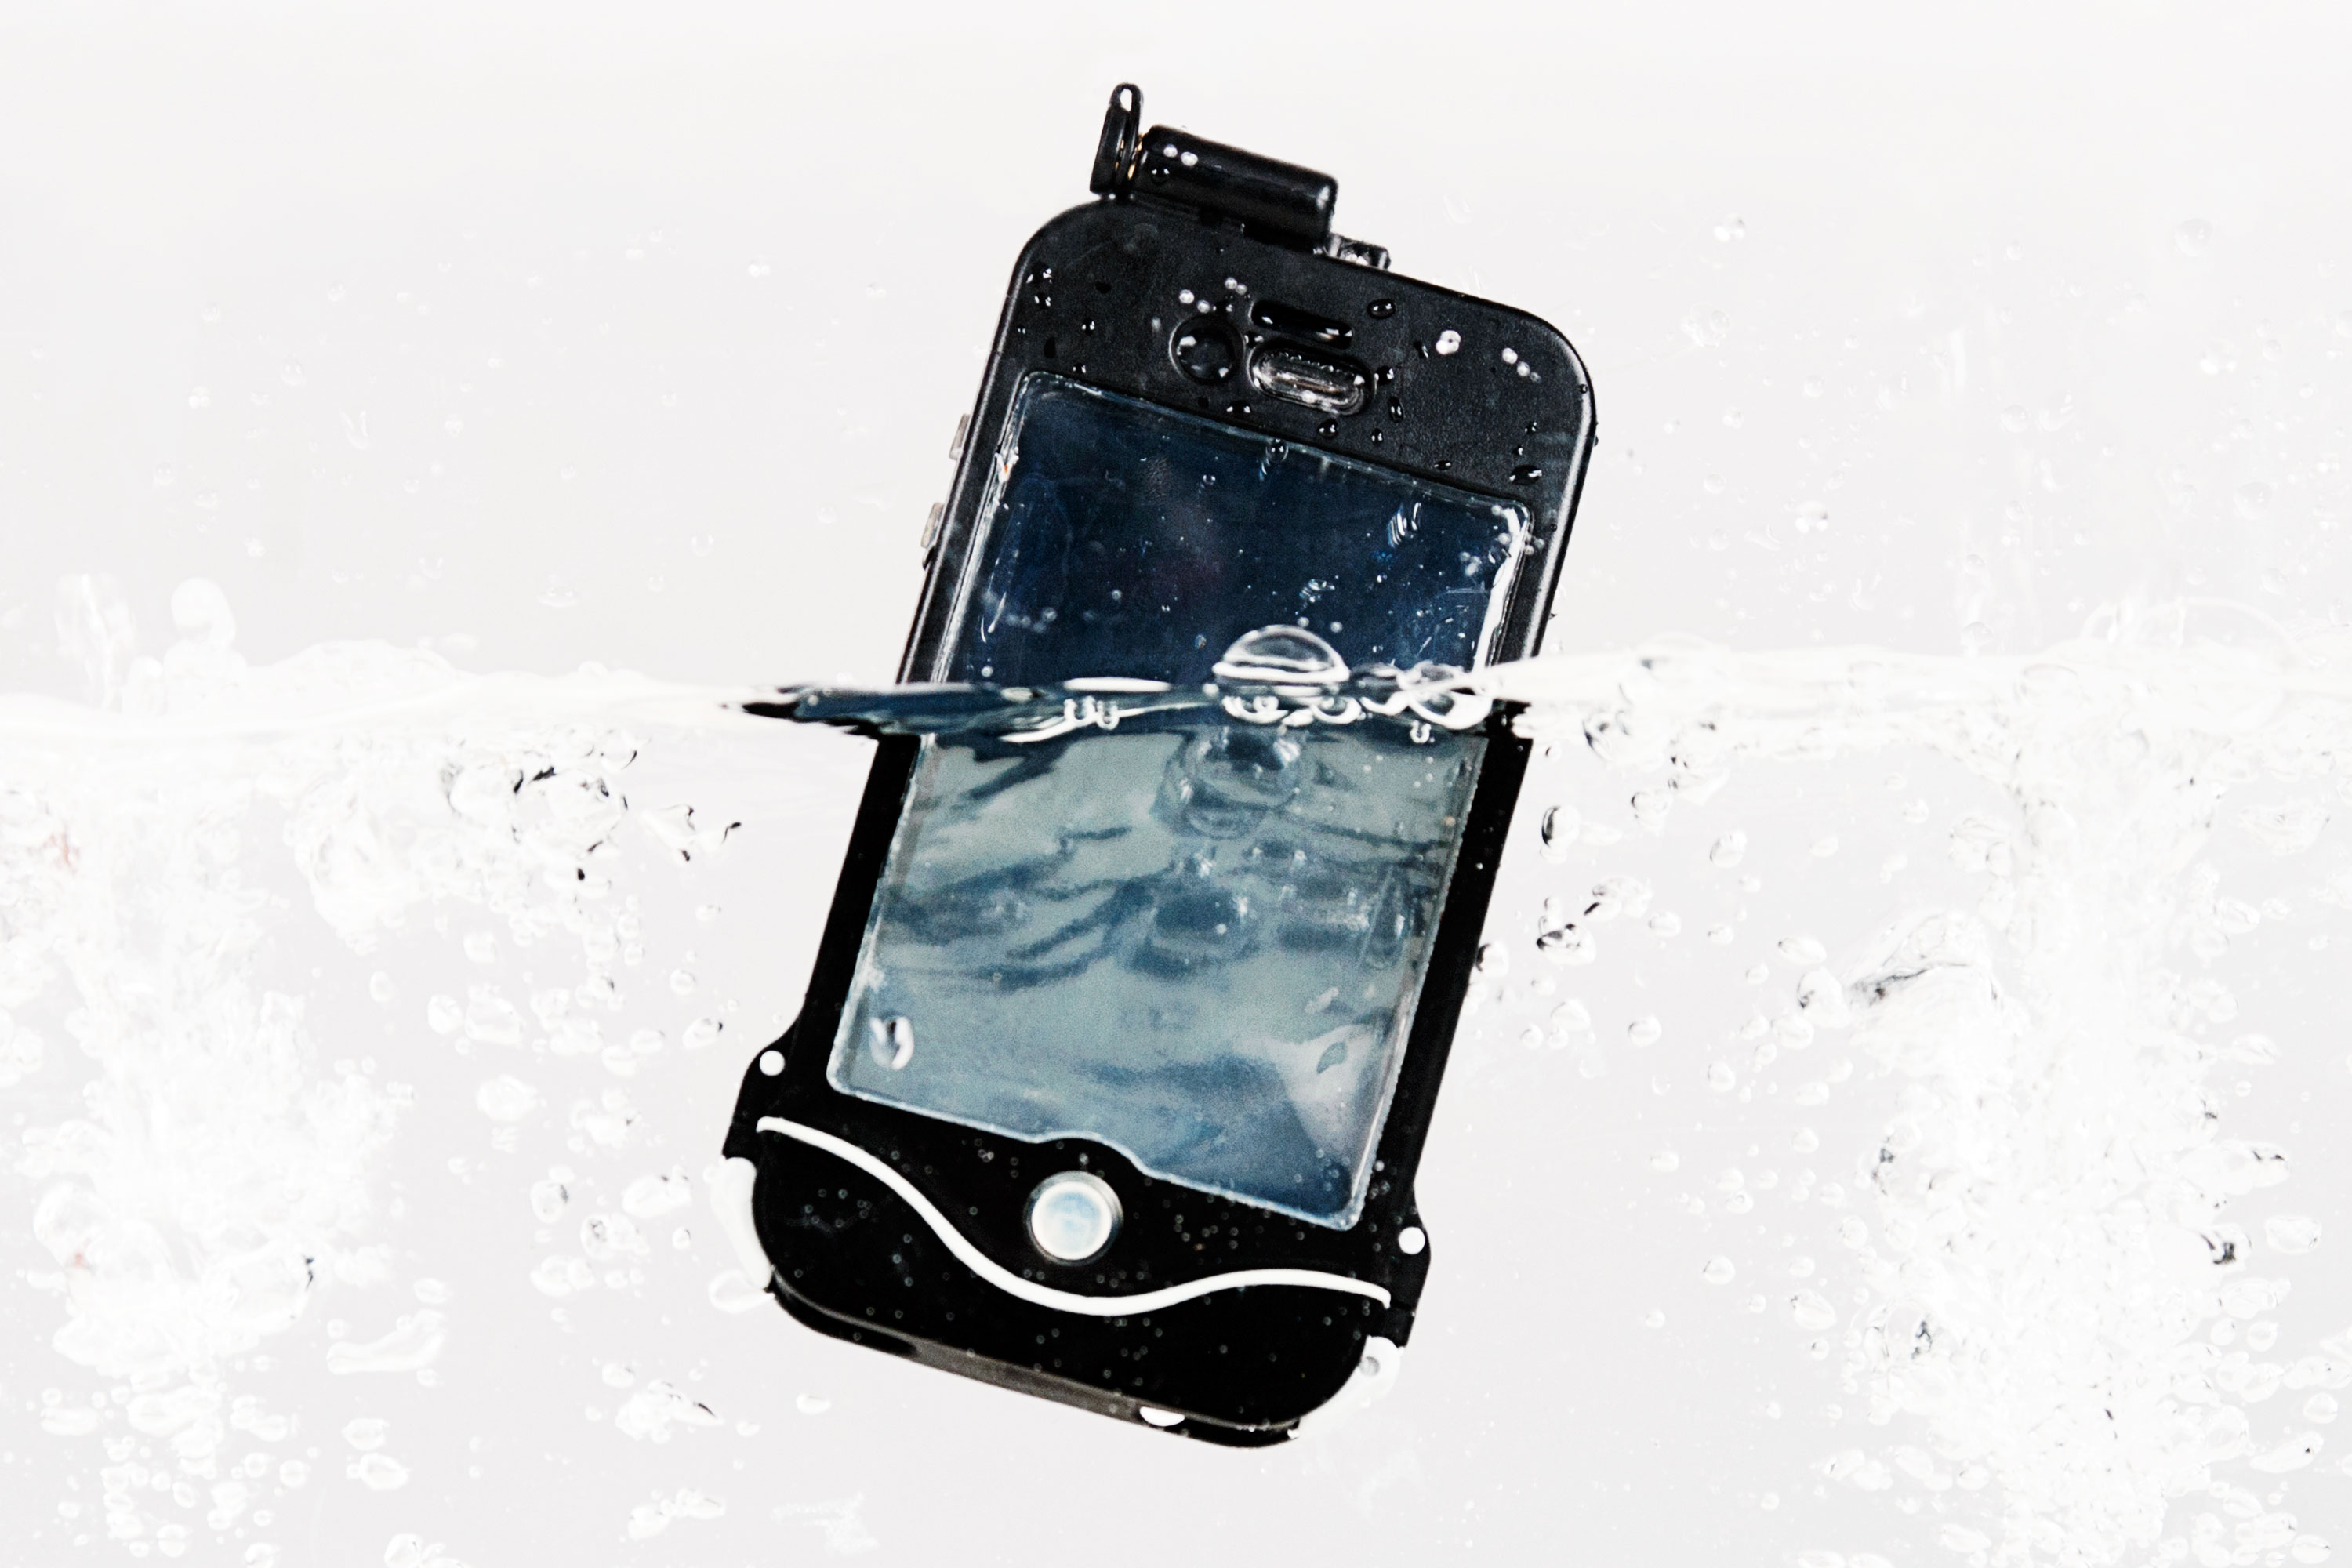 The iPhone Scuba Suit A.K.A. driSuit